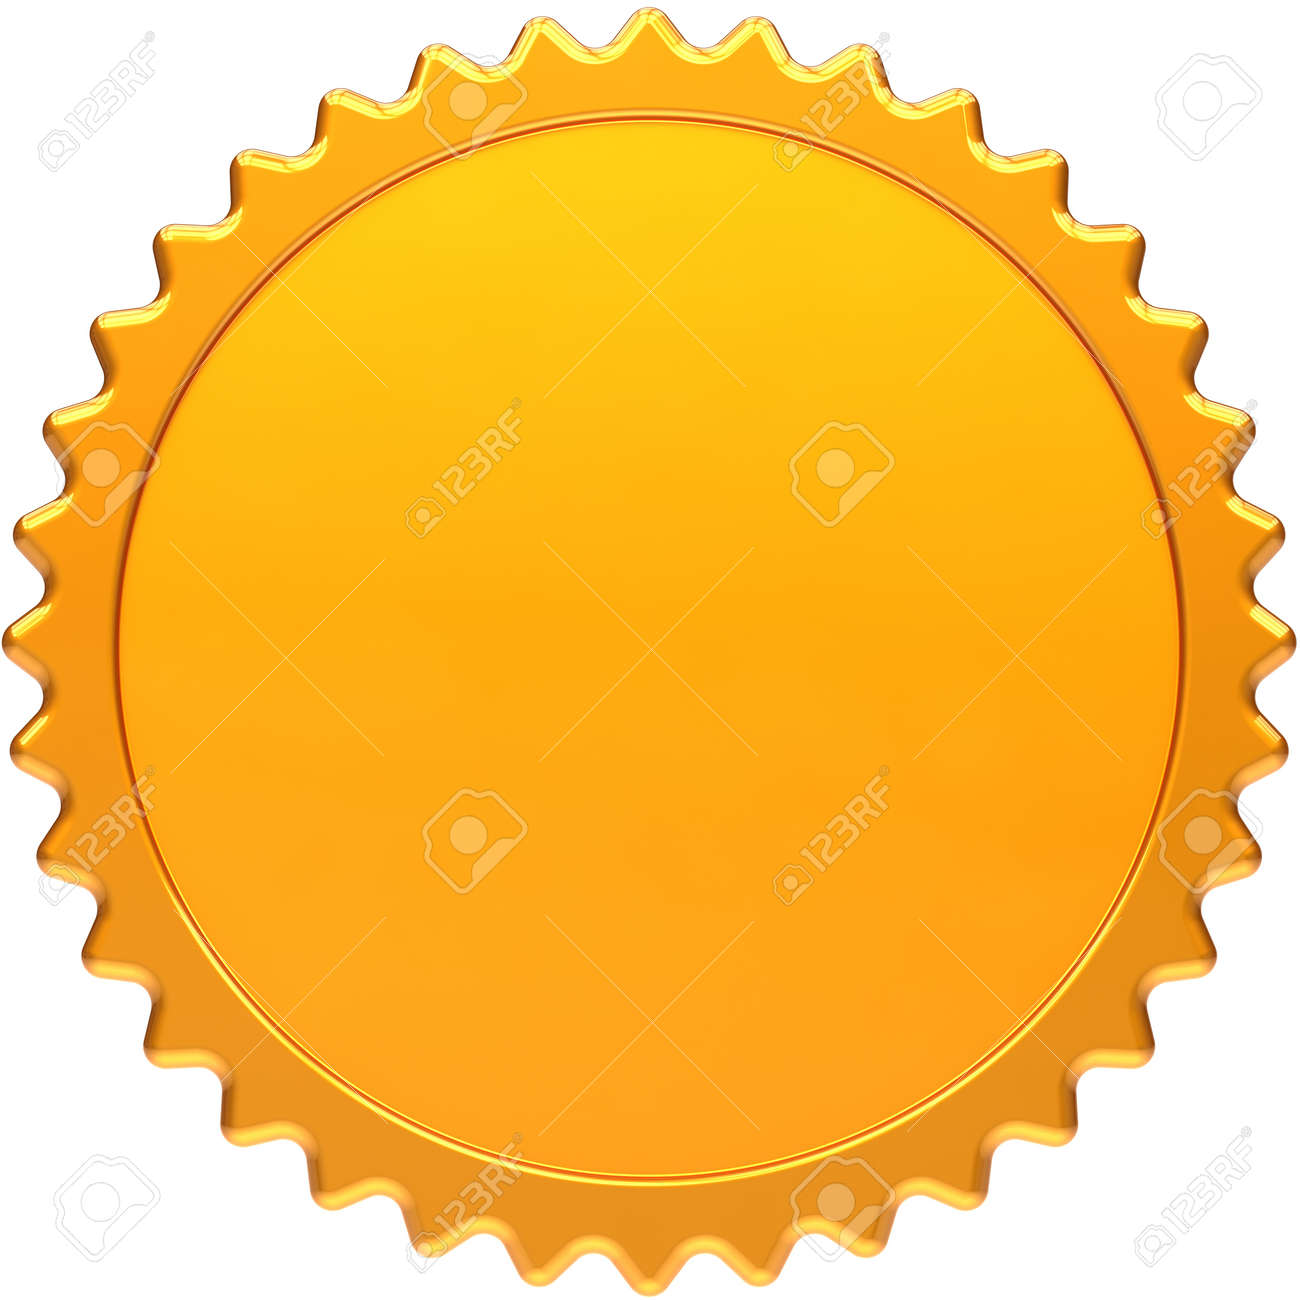 Blank award medal design element. Golden seal concept front view. Luxury champion badge label. Certificate guarantee design element template. Detailed 3d render image. Isolated on white background Stock Photo - 10375225